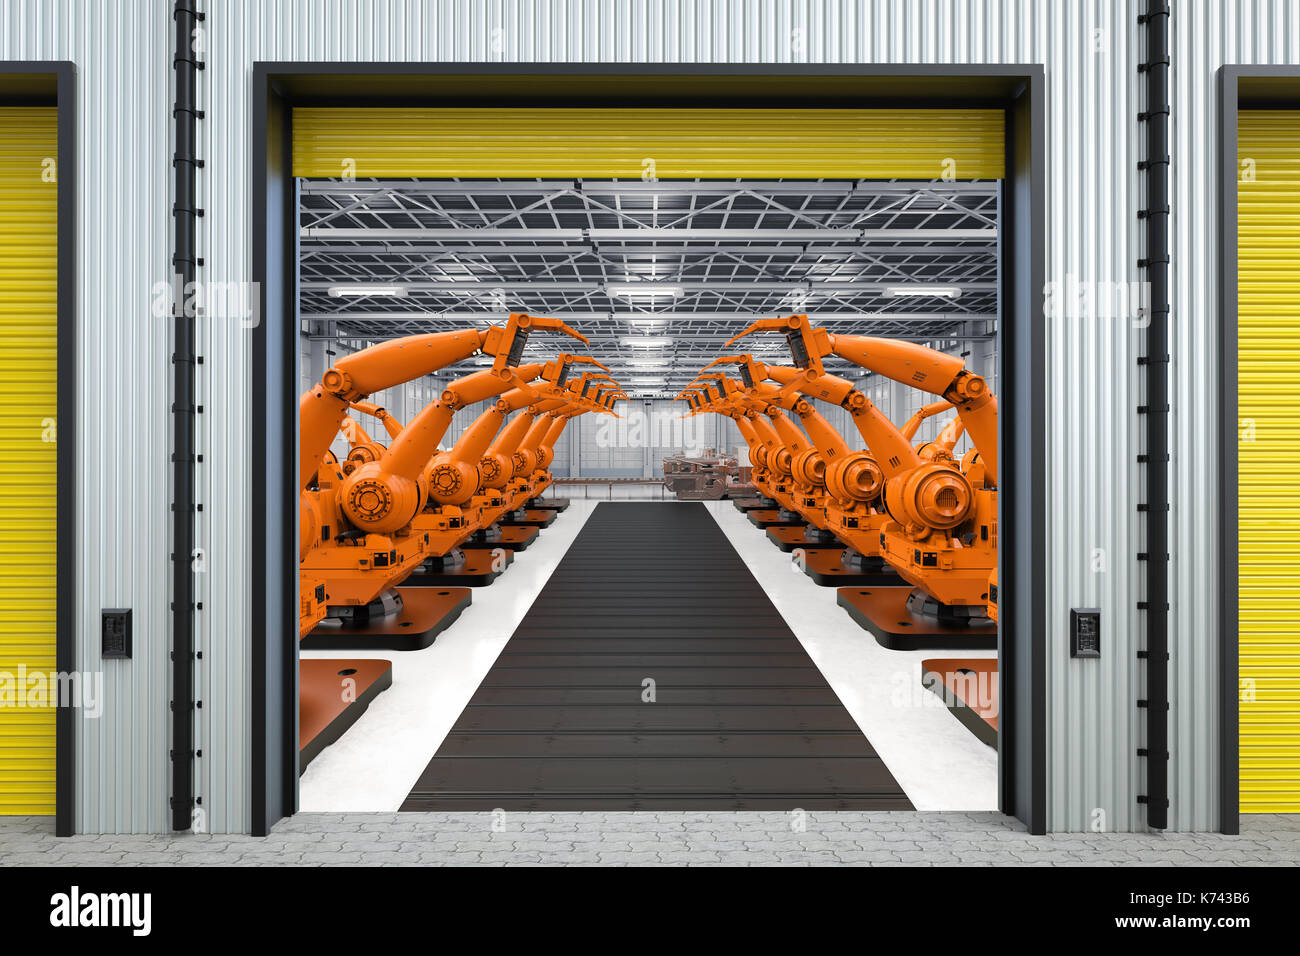 3d rendering robot arms with conveyor line in factory - Stock Image